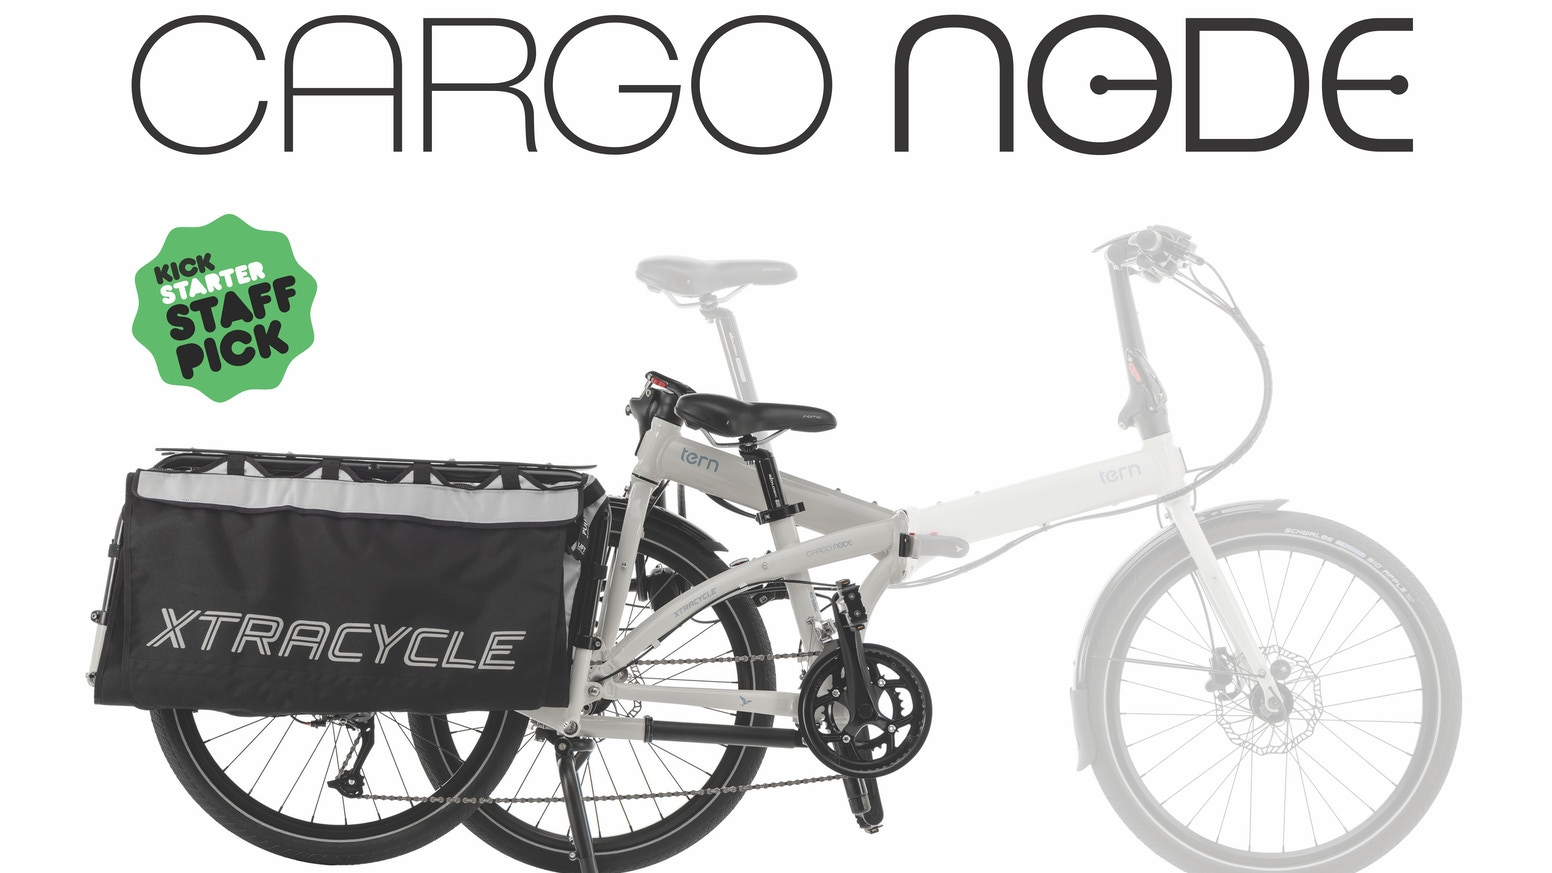 Massive cargo capacity in a bike that folds down to 1/3 of its size—in 10 seconds—for compact storage and easy transport.